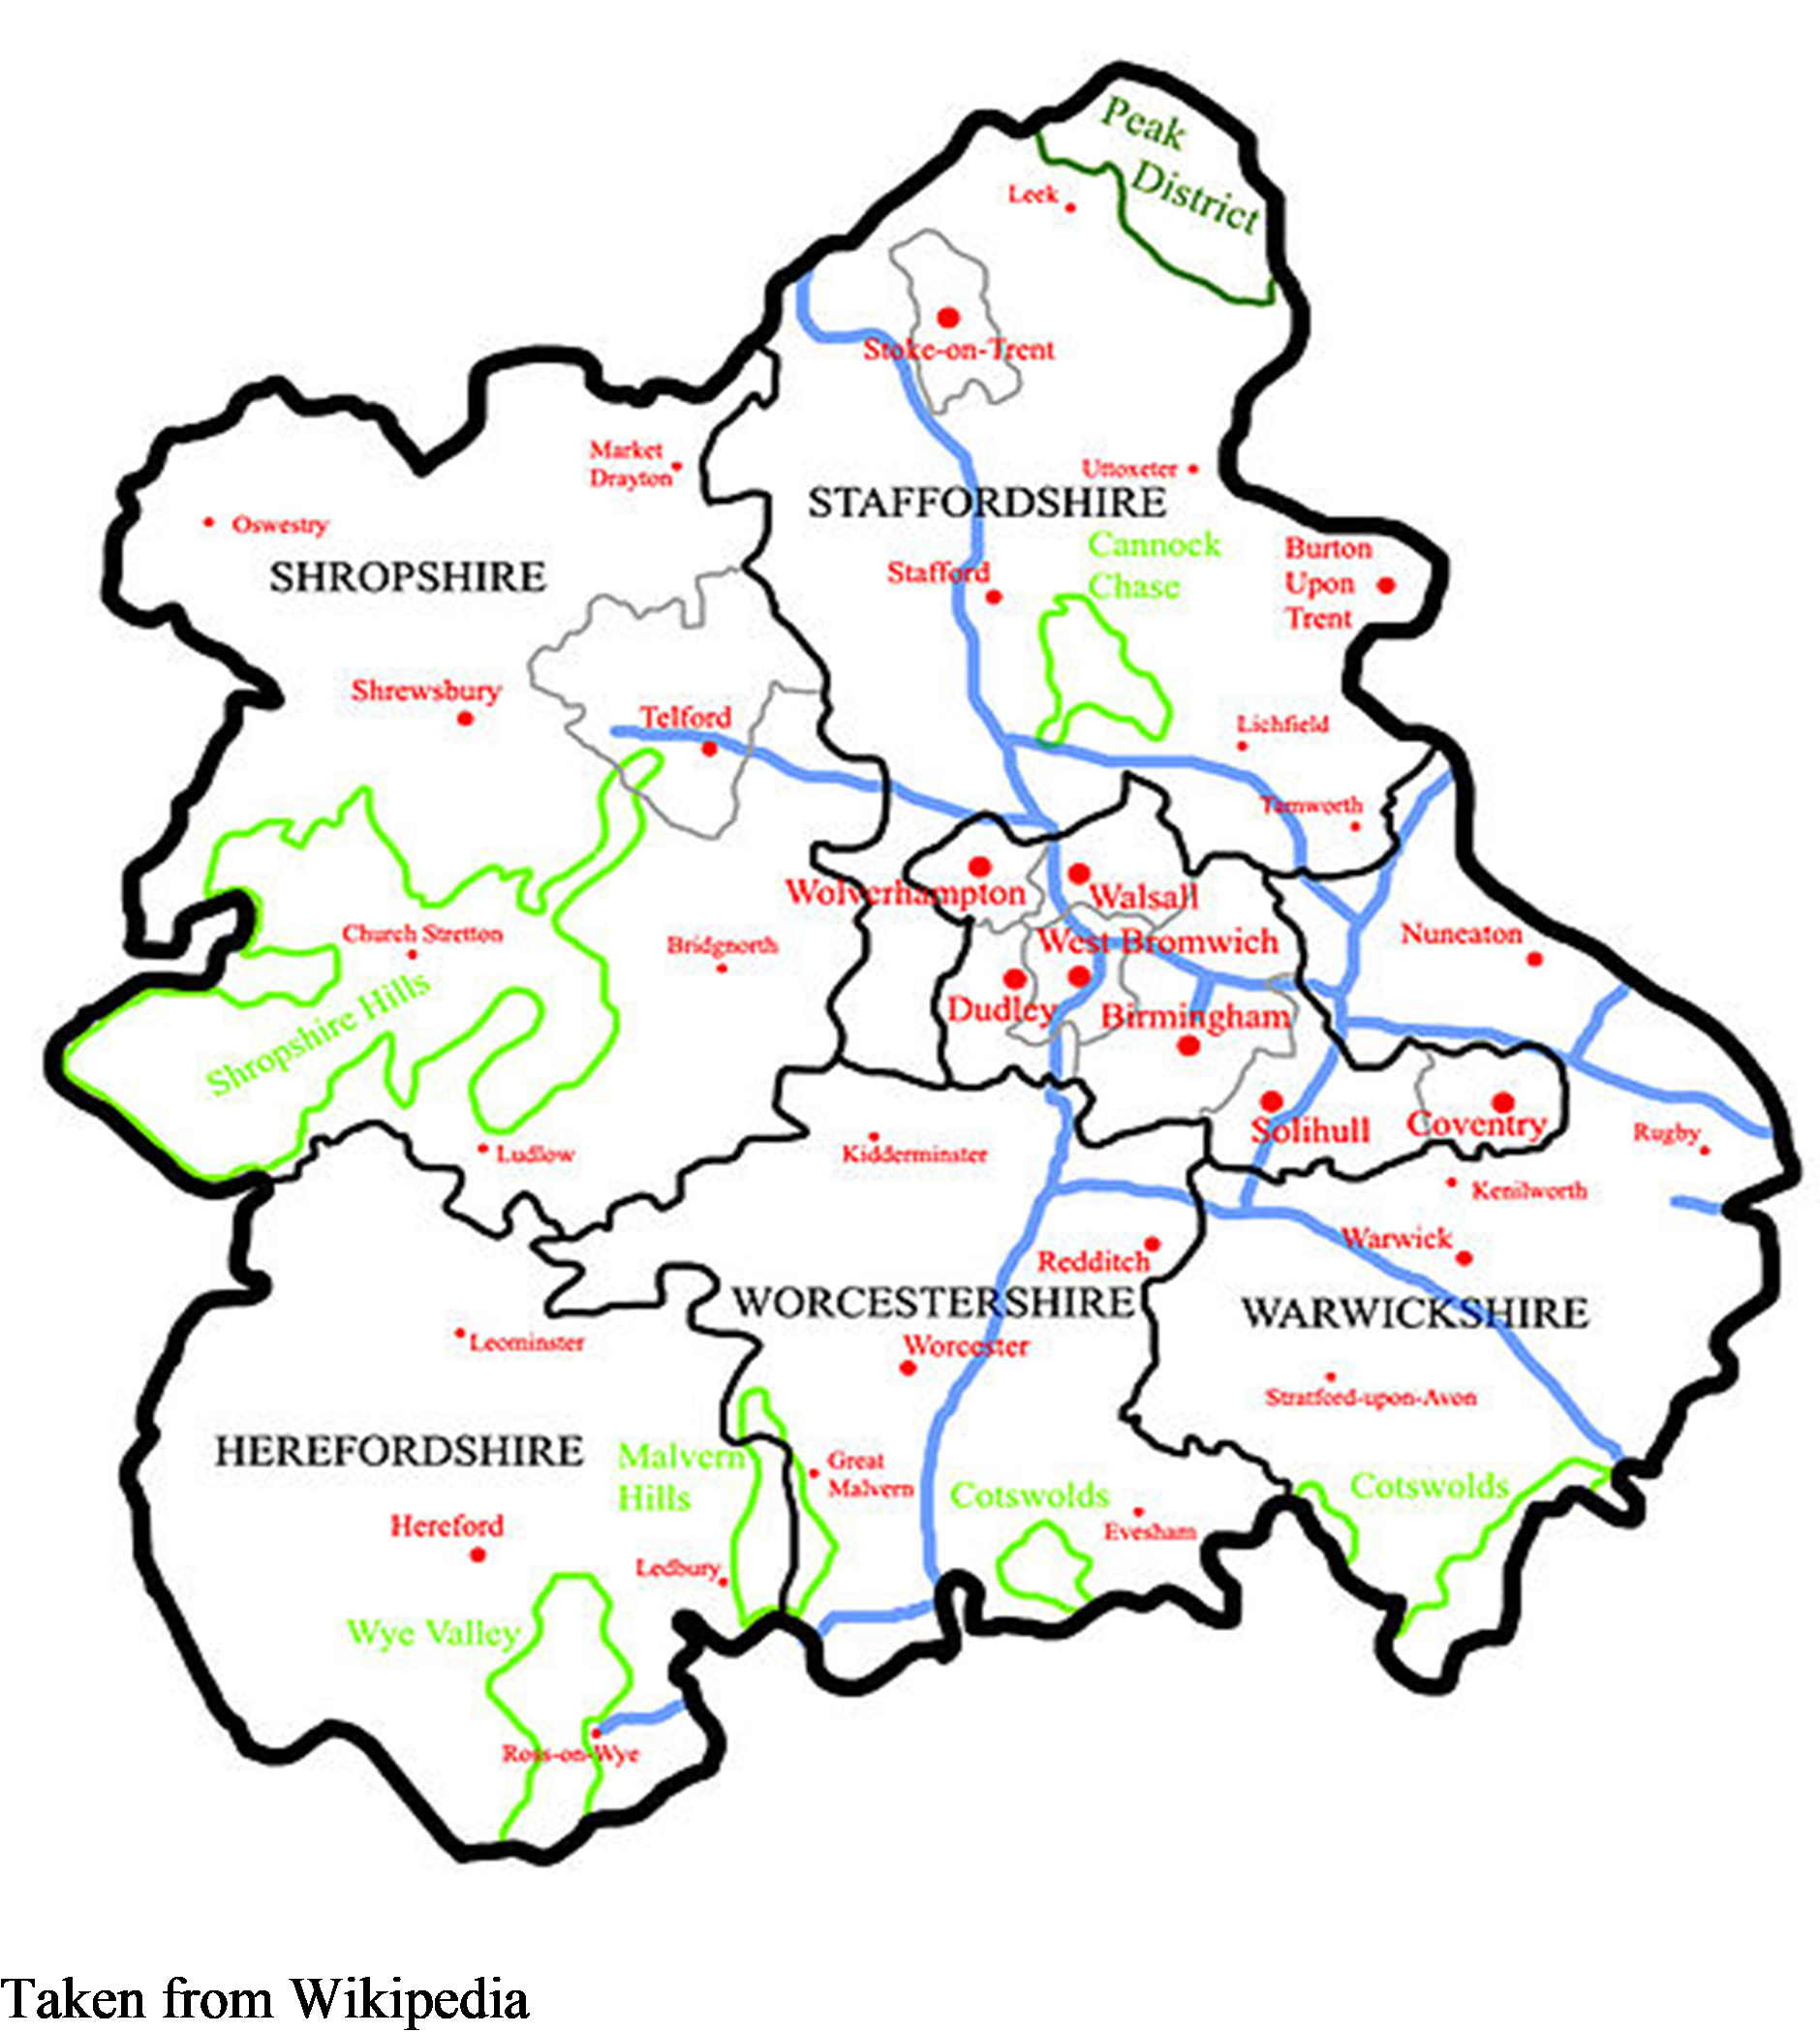 WEST MIDLANDS COUNTIES